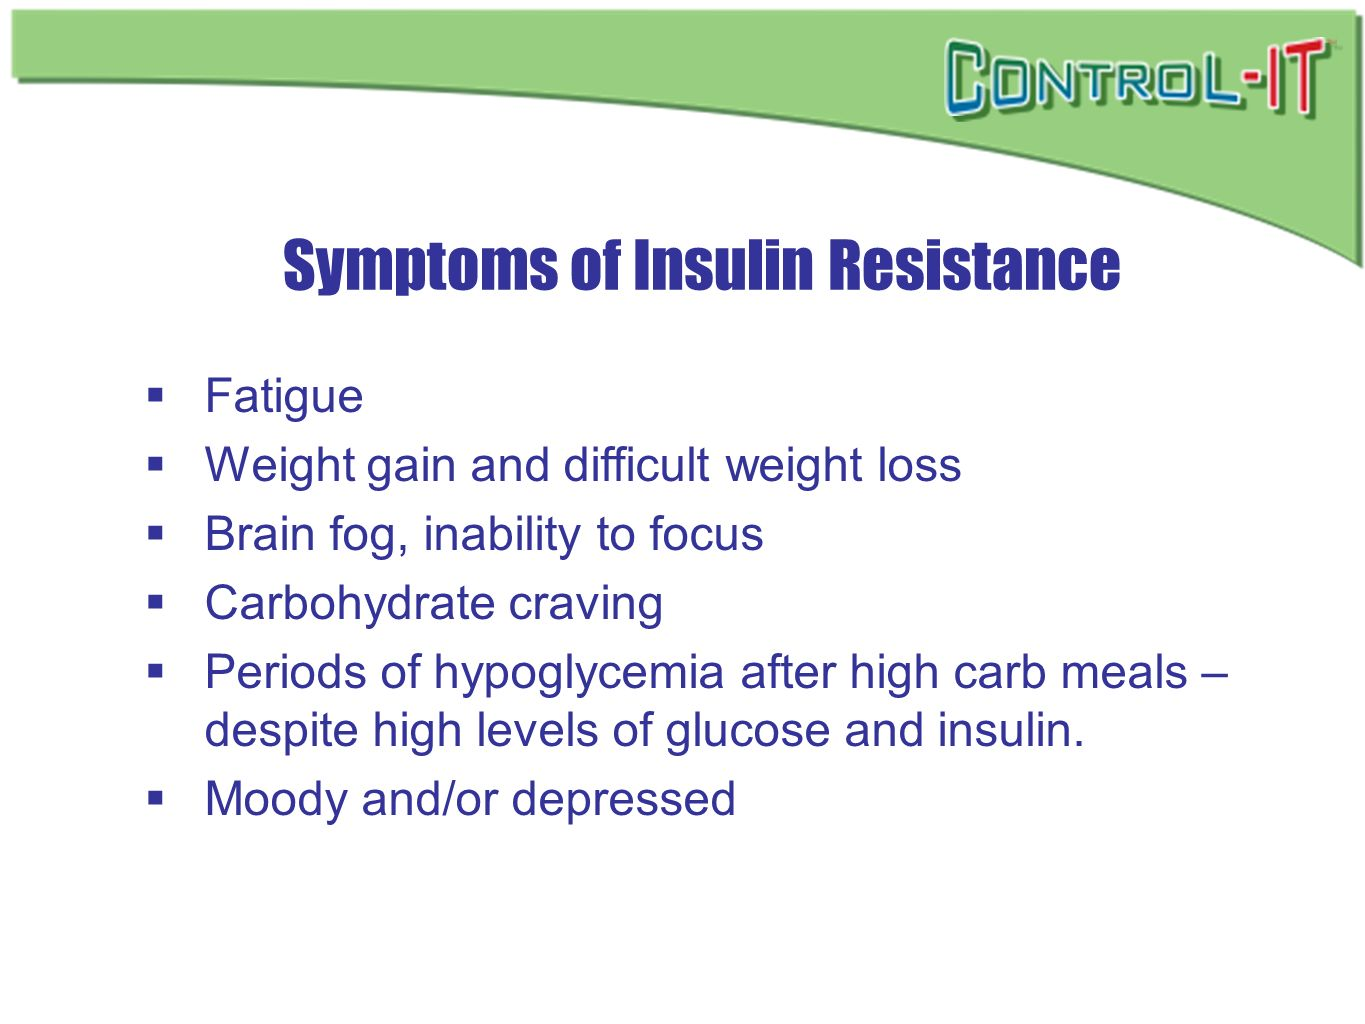 Symptoms of Insulin Resistance Fatigue Weight gain and difficult weight loss Brain fog, inability to focus Carbohydrate craving Periods of hypoglycemi